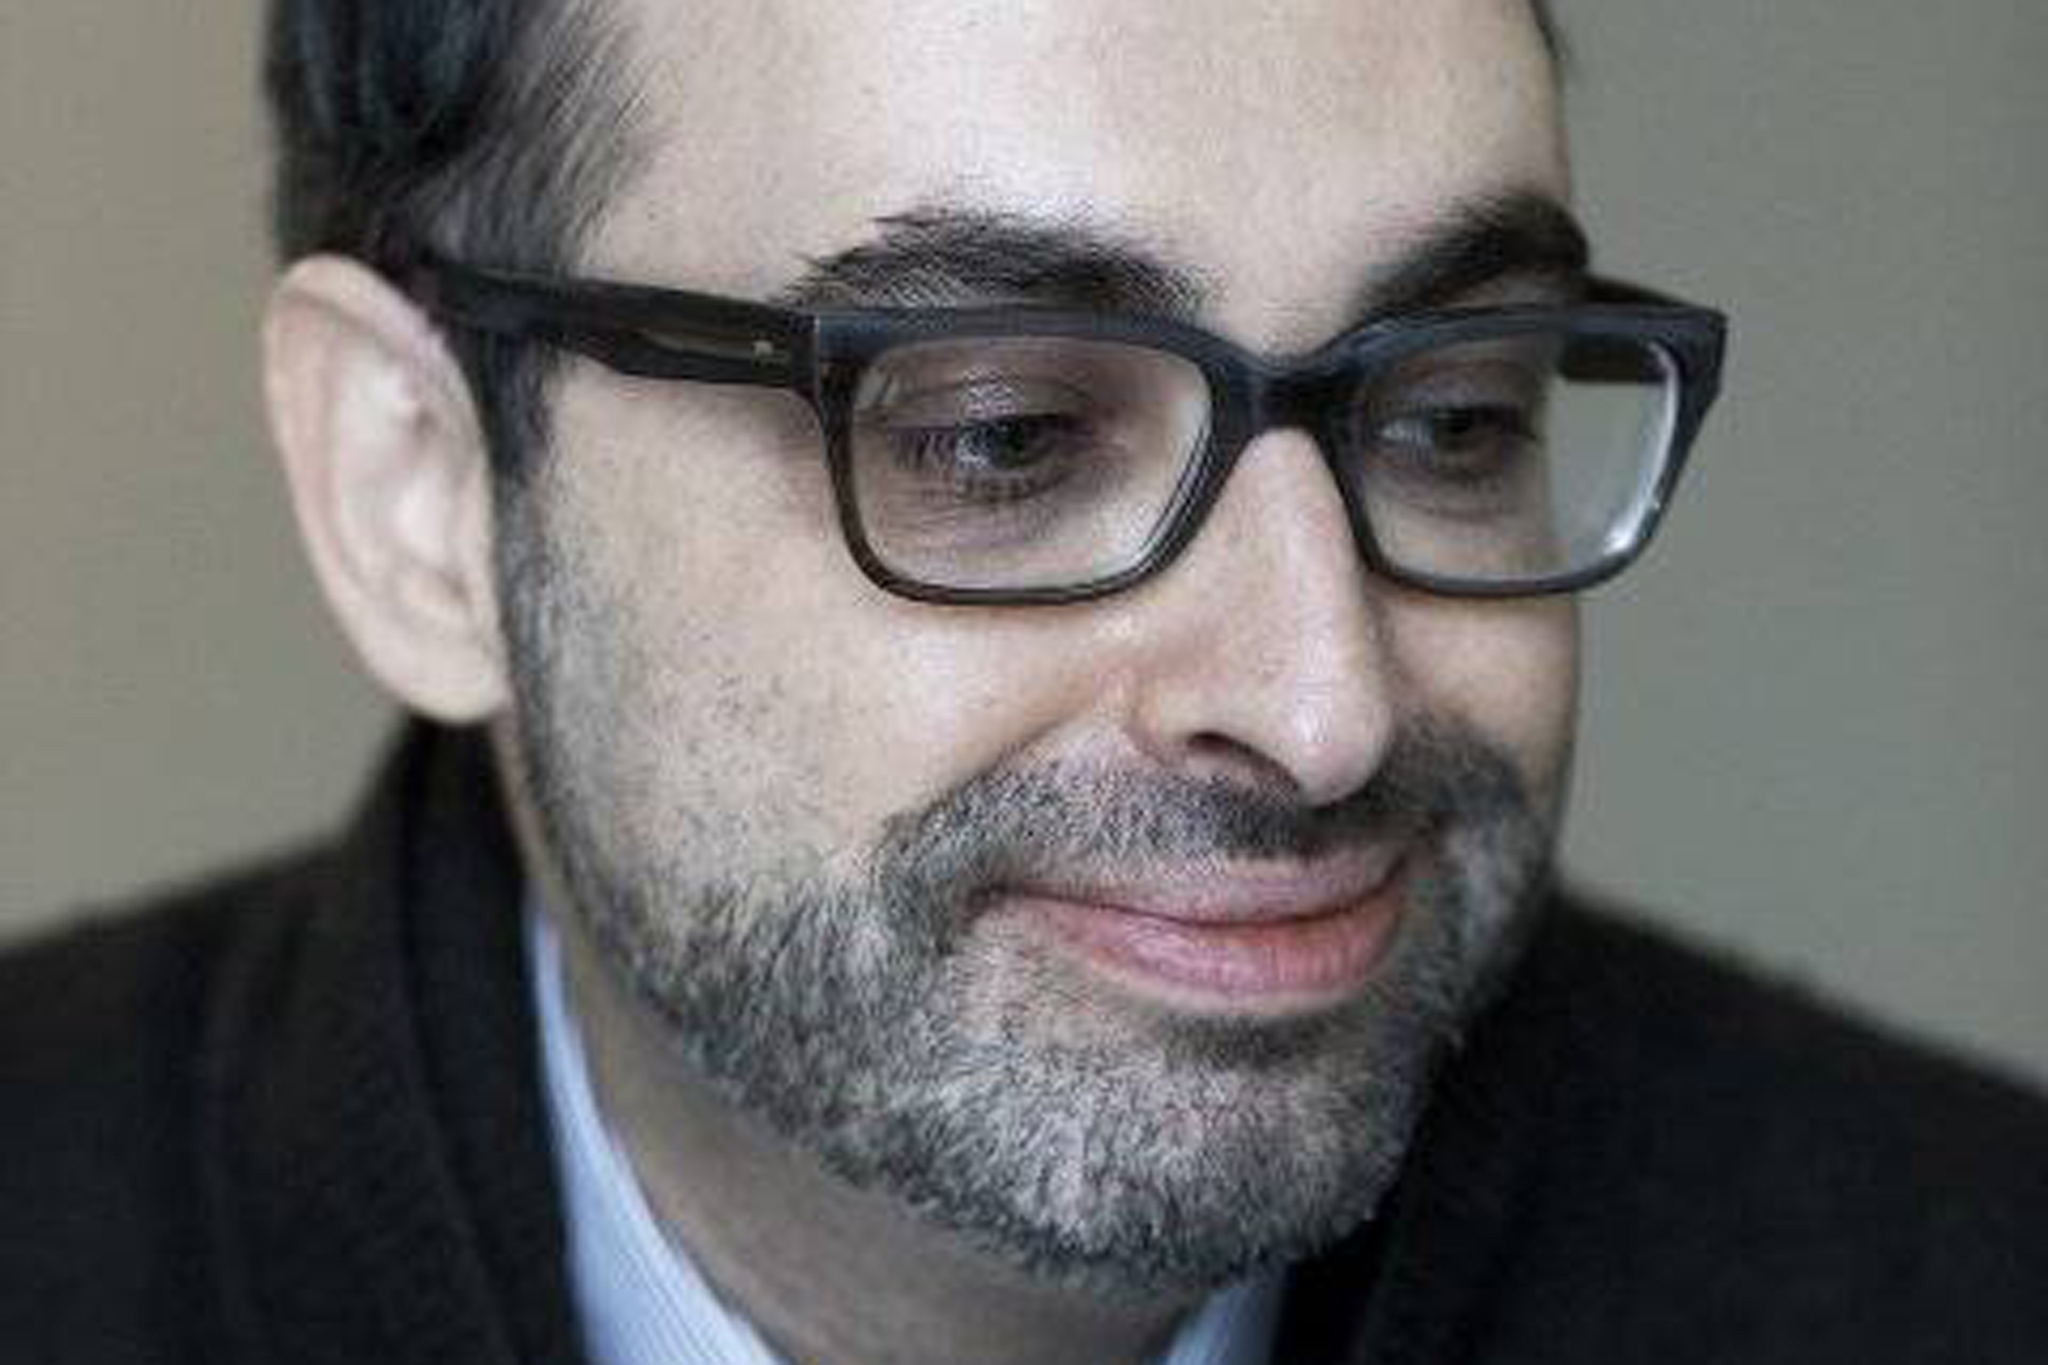 Gary Shteyngart gets roasted, one of Time Out's 101 things to do in New York City in the fall